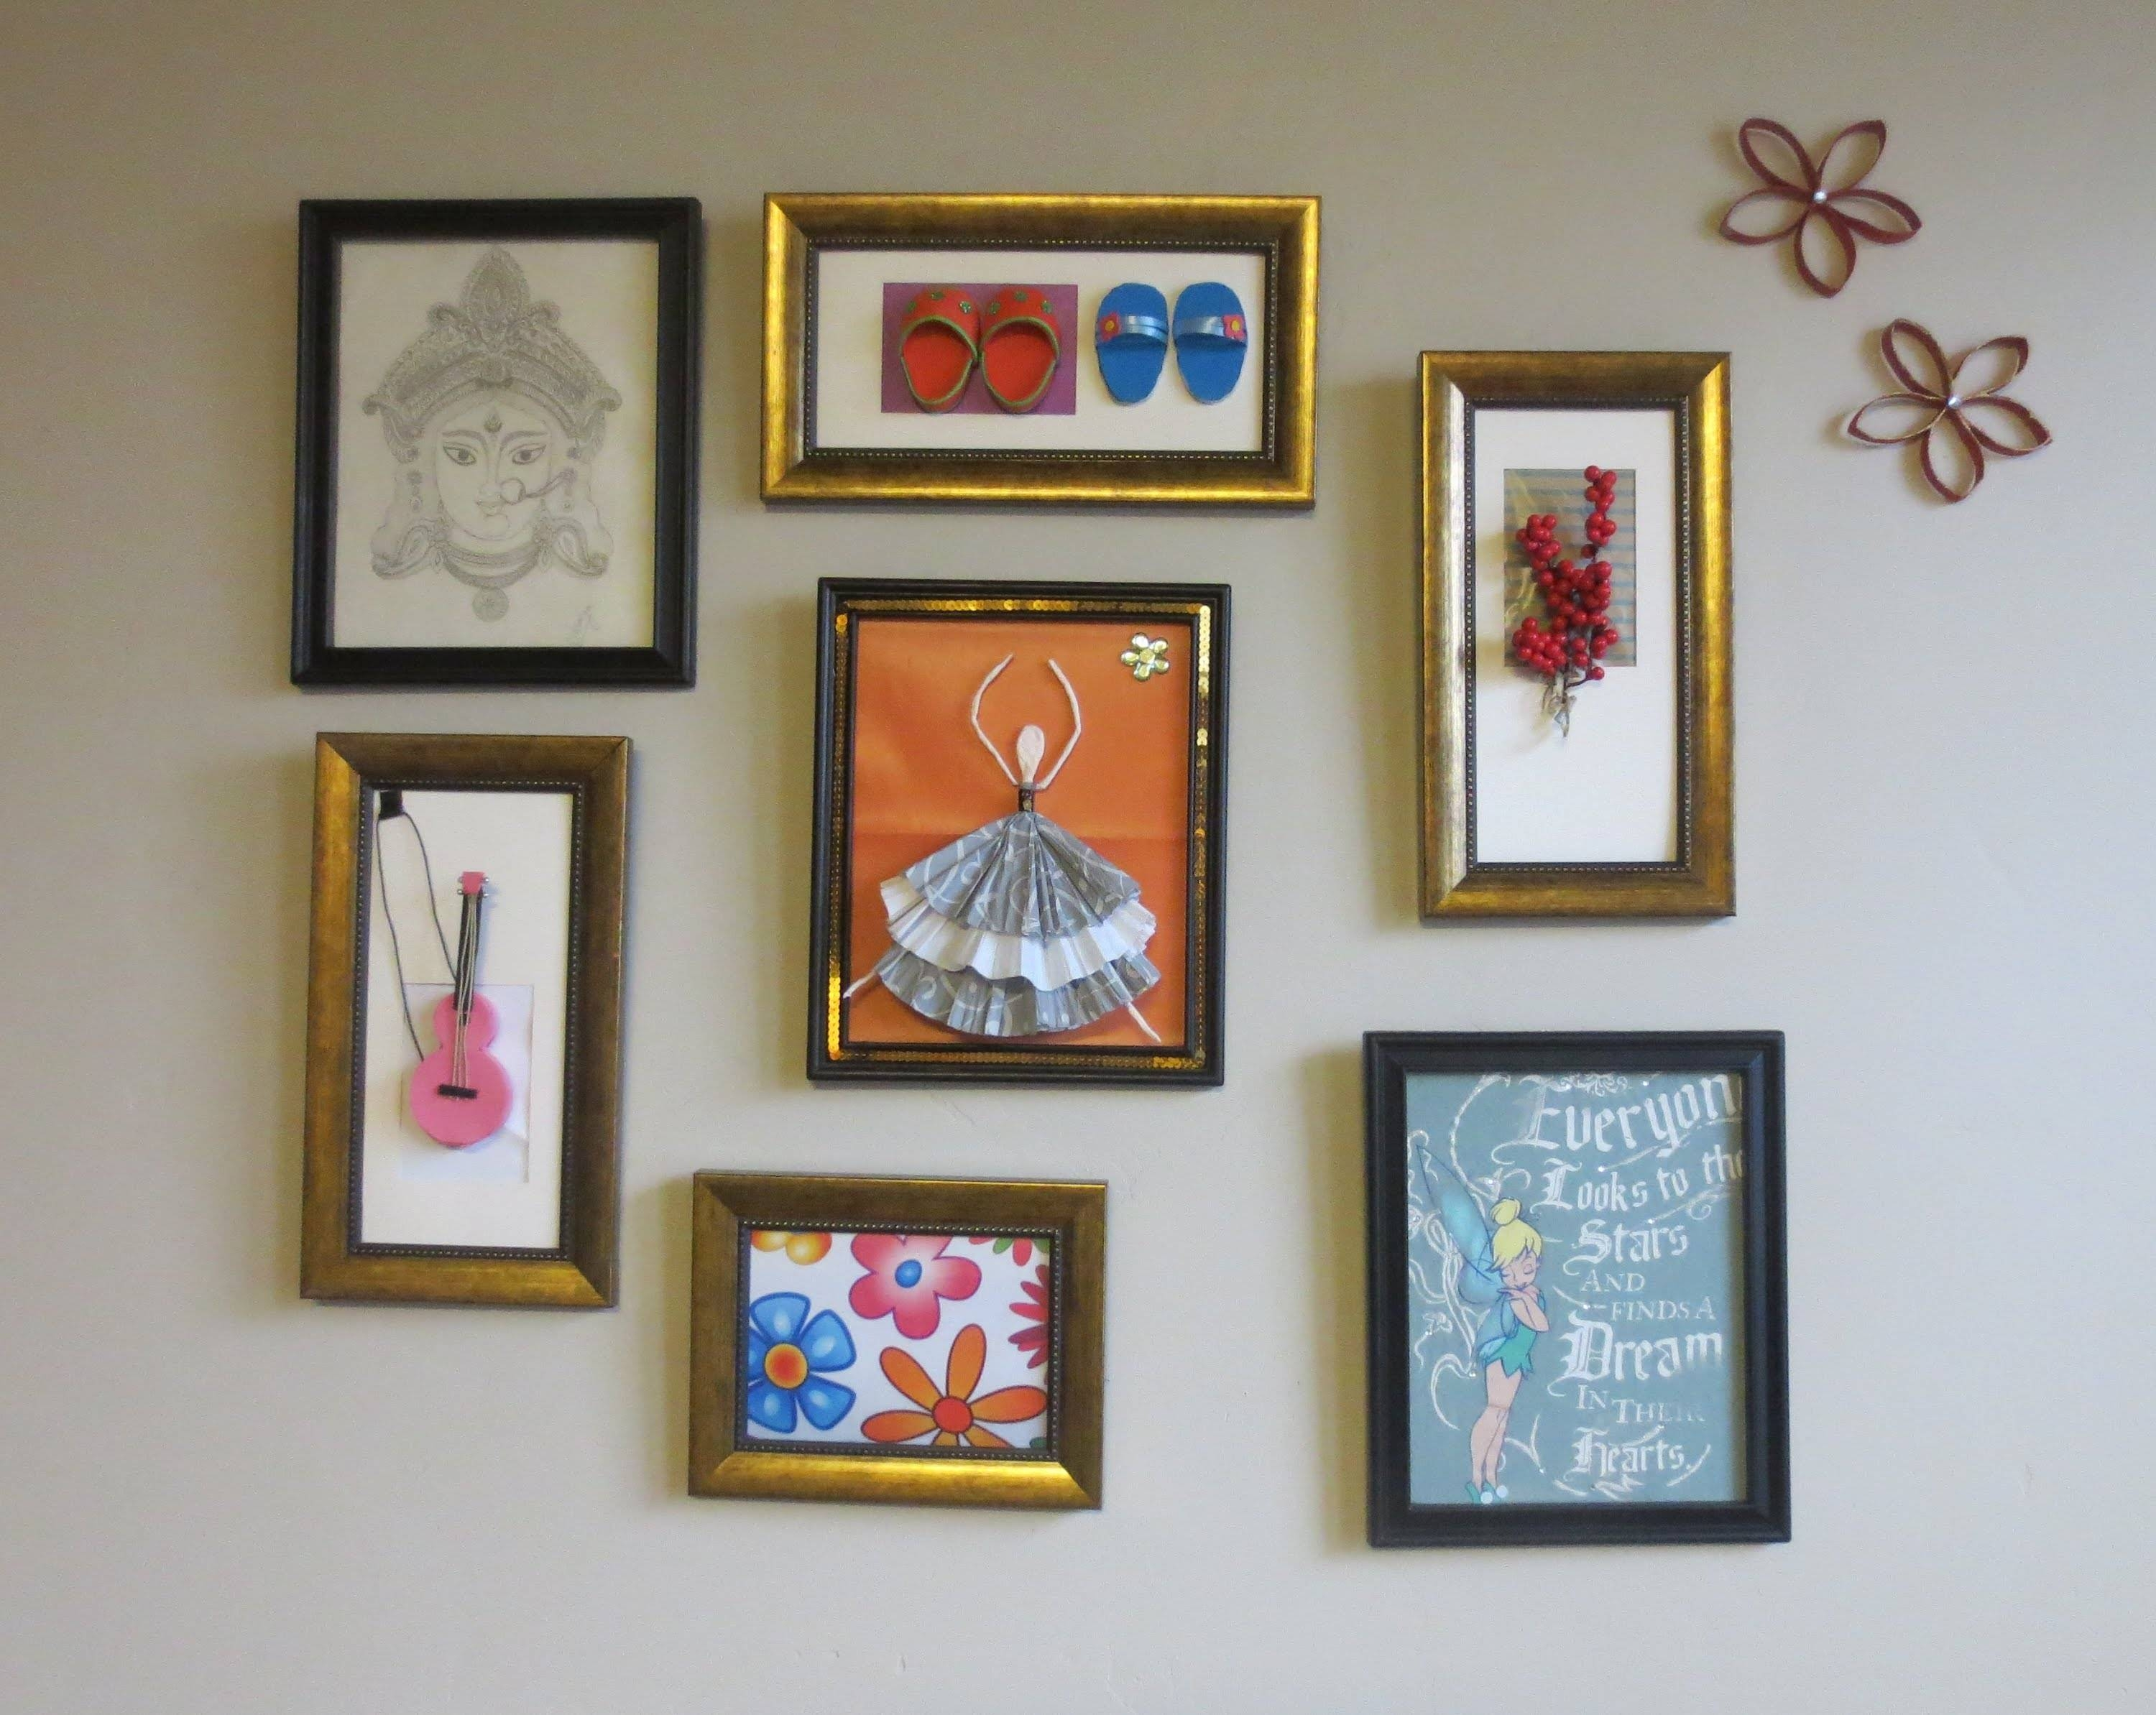 Home Decor : Tshirt Graphic & 3D Wall Art Picture Frame Collage Pertaining To 2018 Diy 3D Wall Art Decor (View 11 of 20)